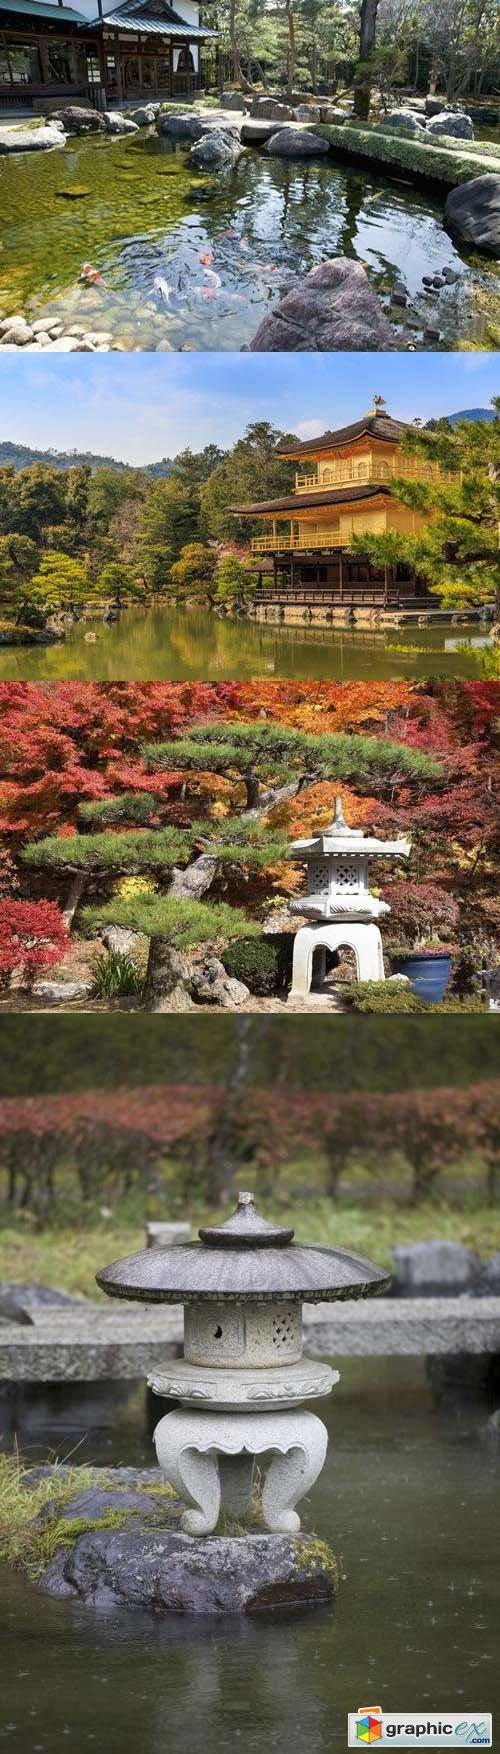 Stock Photos - Japan Garden